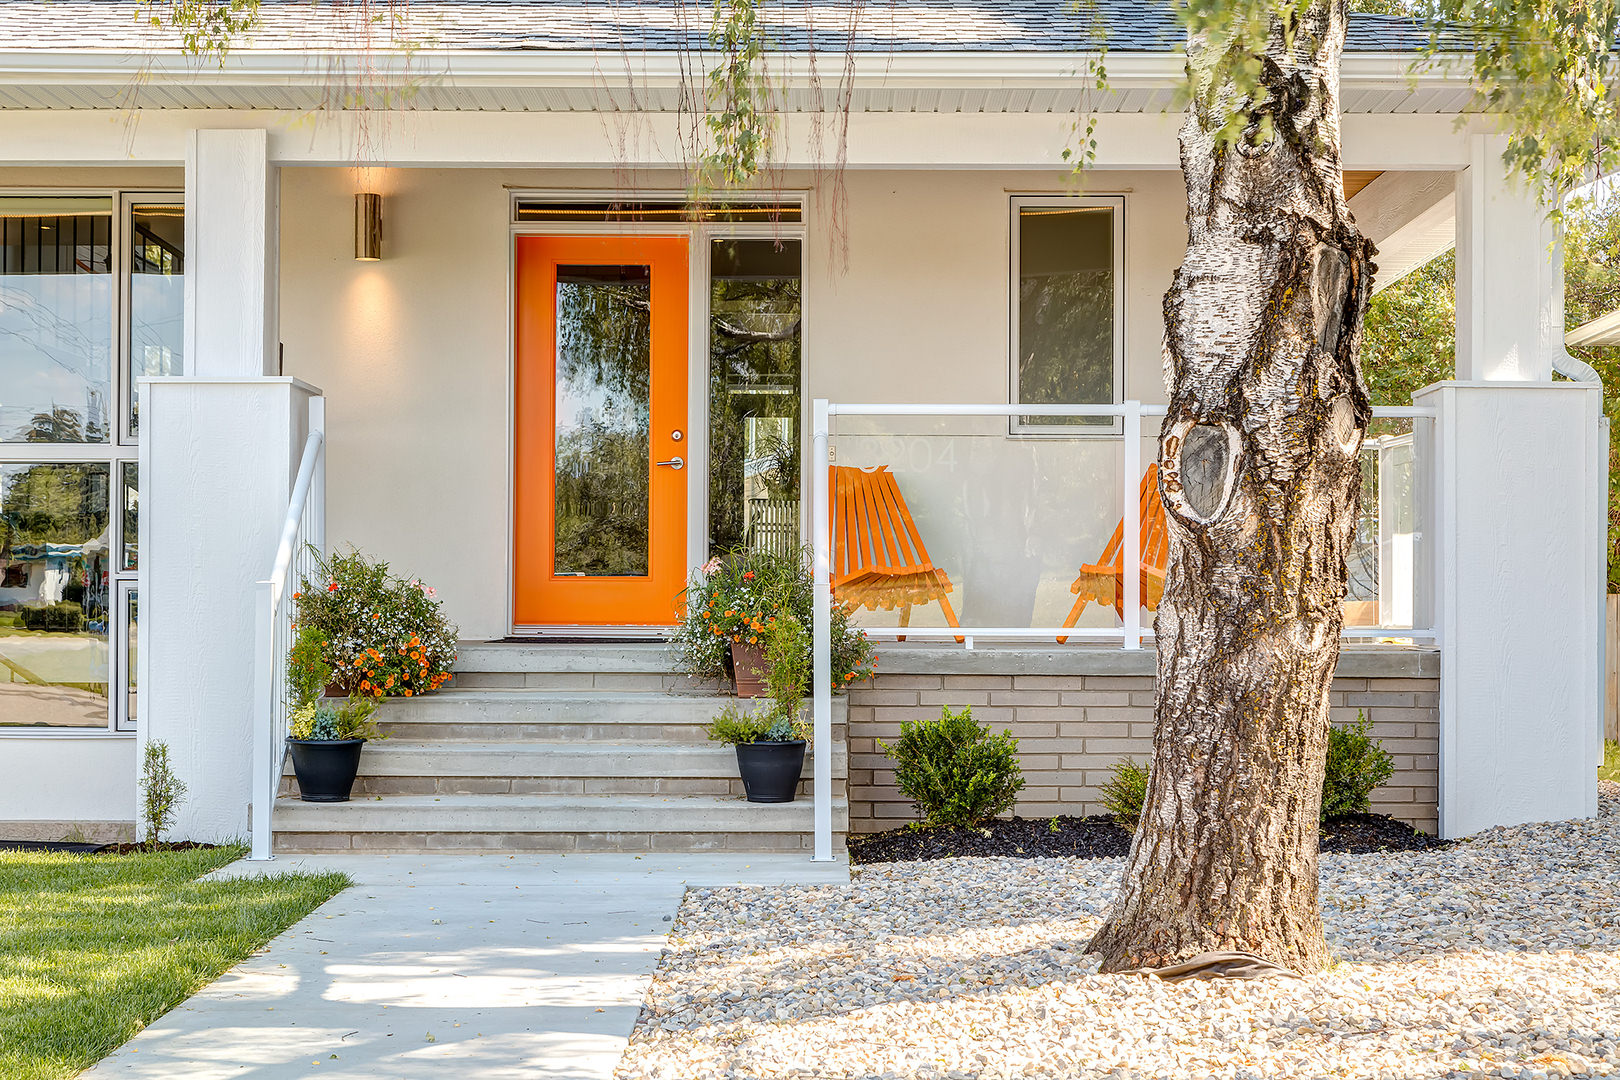 A front yard with concrete pathway ornamented with white pebbles and grass on each side, potted flowers and greenery on the steps. Orange coating on the glass front door and a pair of orange wooded chairs will approach you as you reach the front porch.